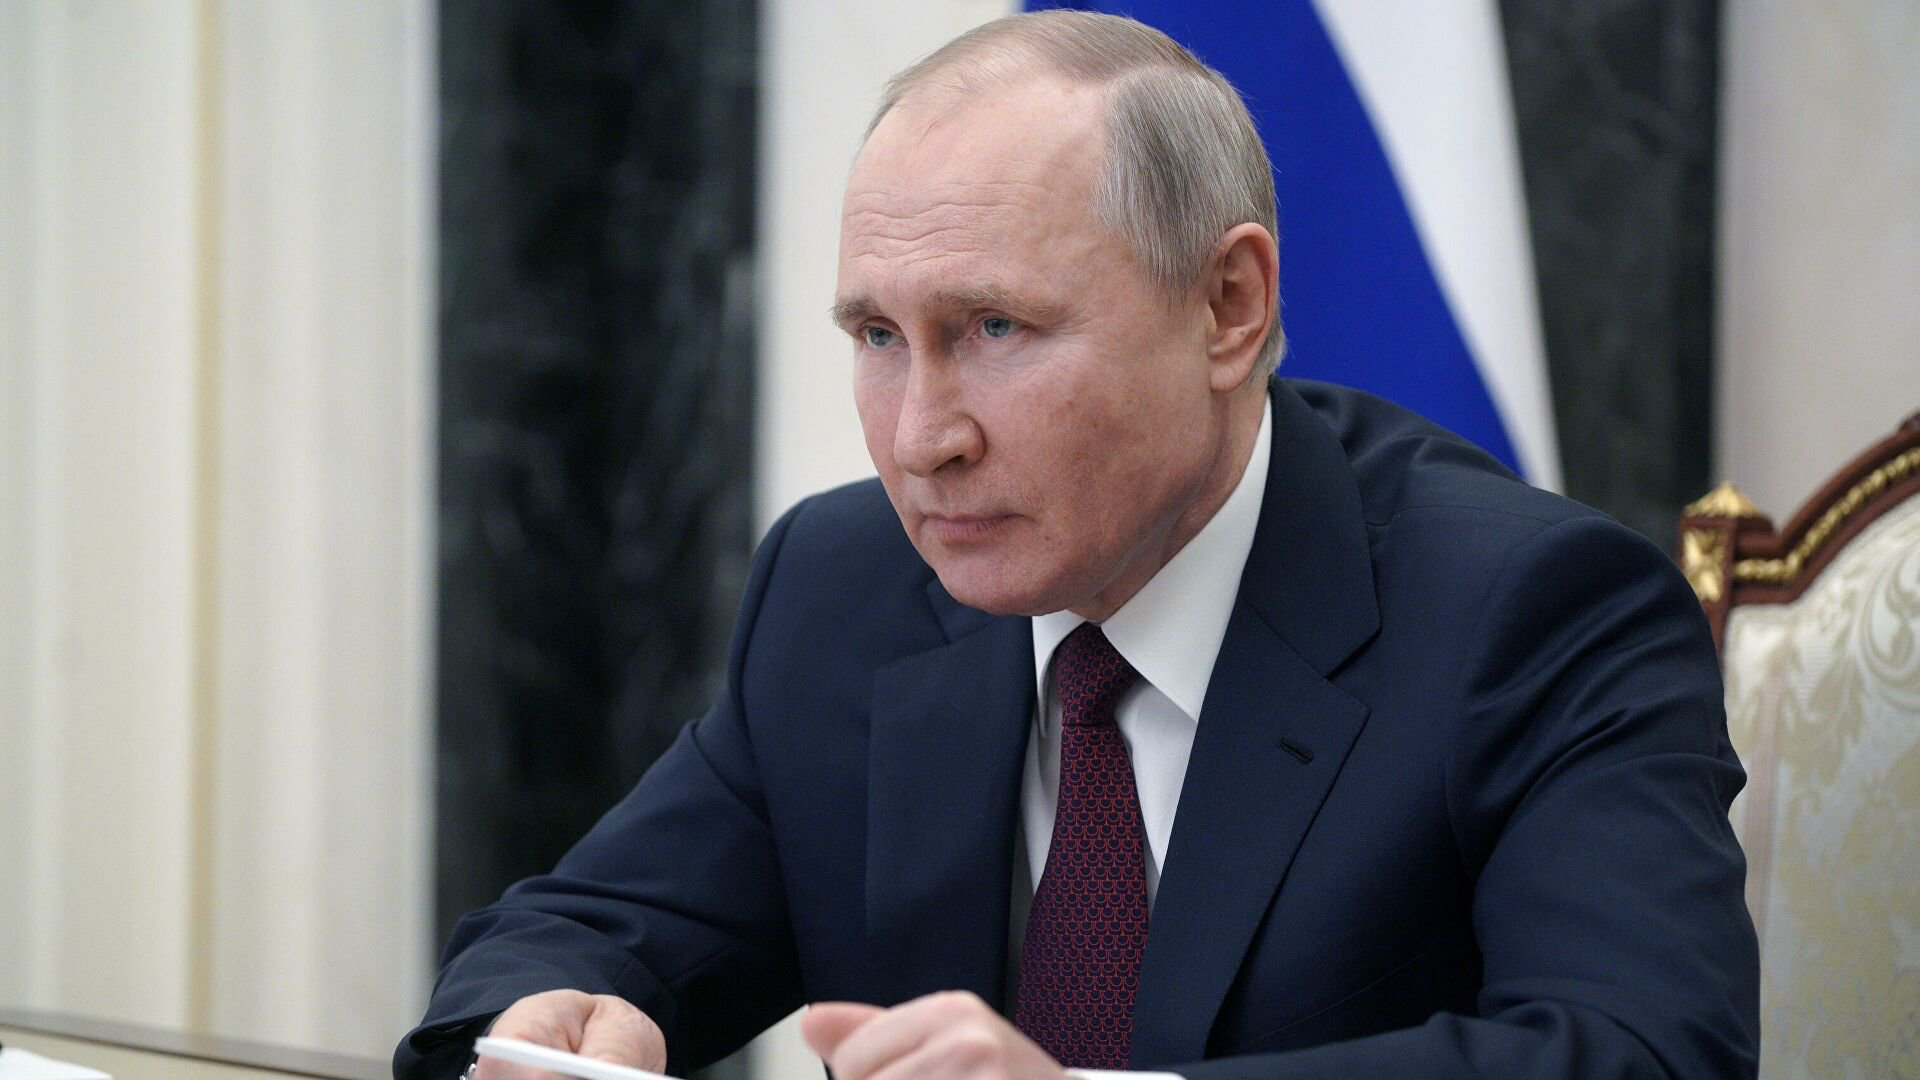 Putin ready to mediate in resolving conflict between Kyrgyzstan and Tajikistan